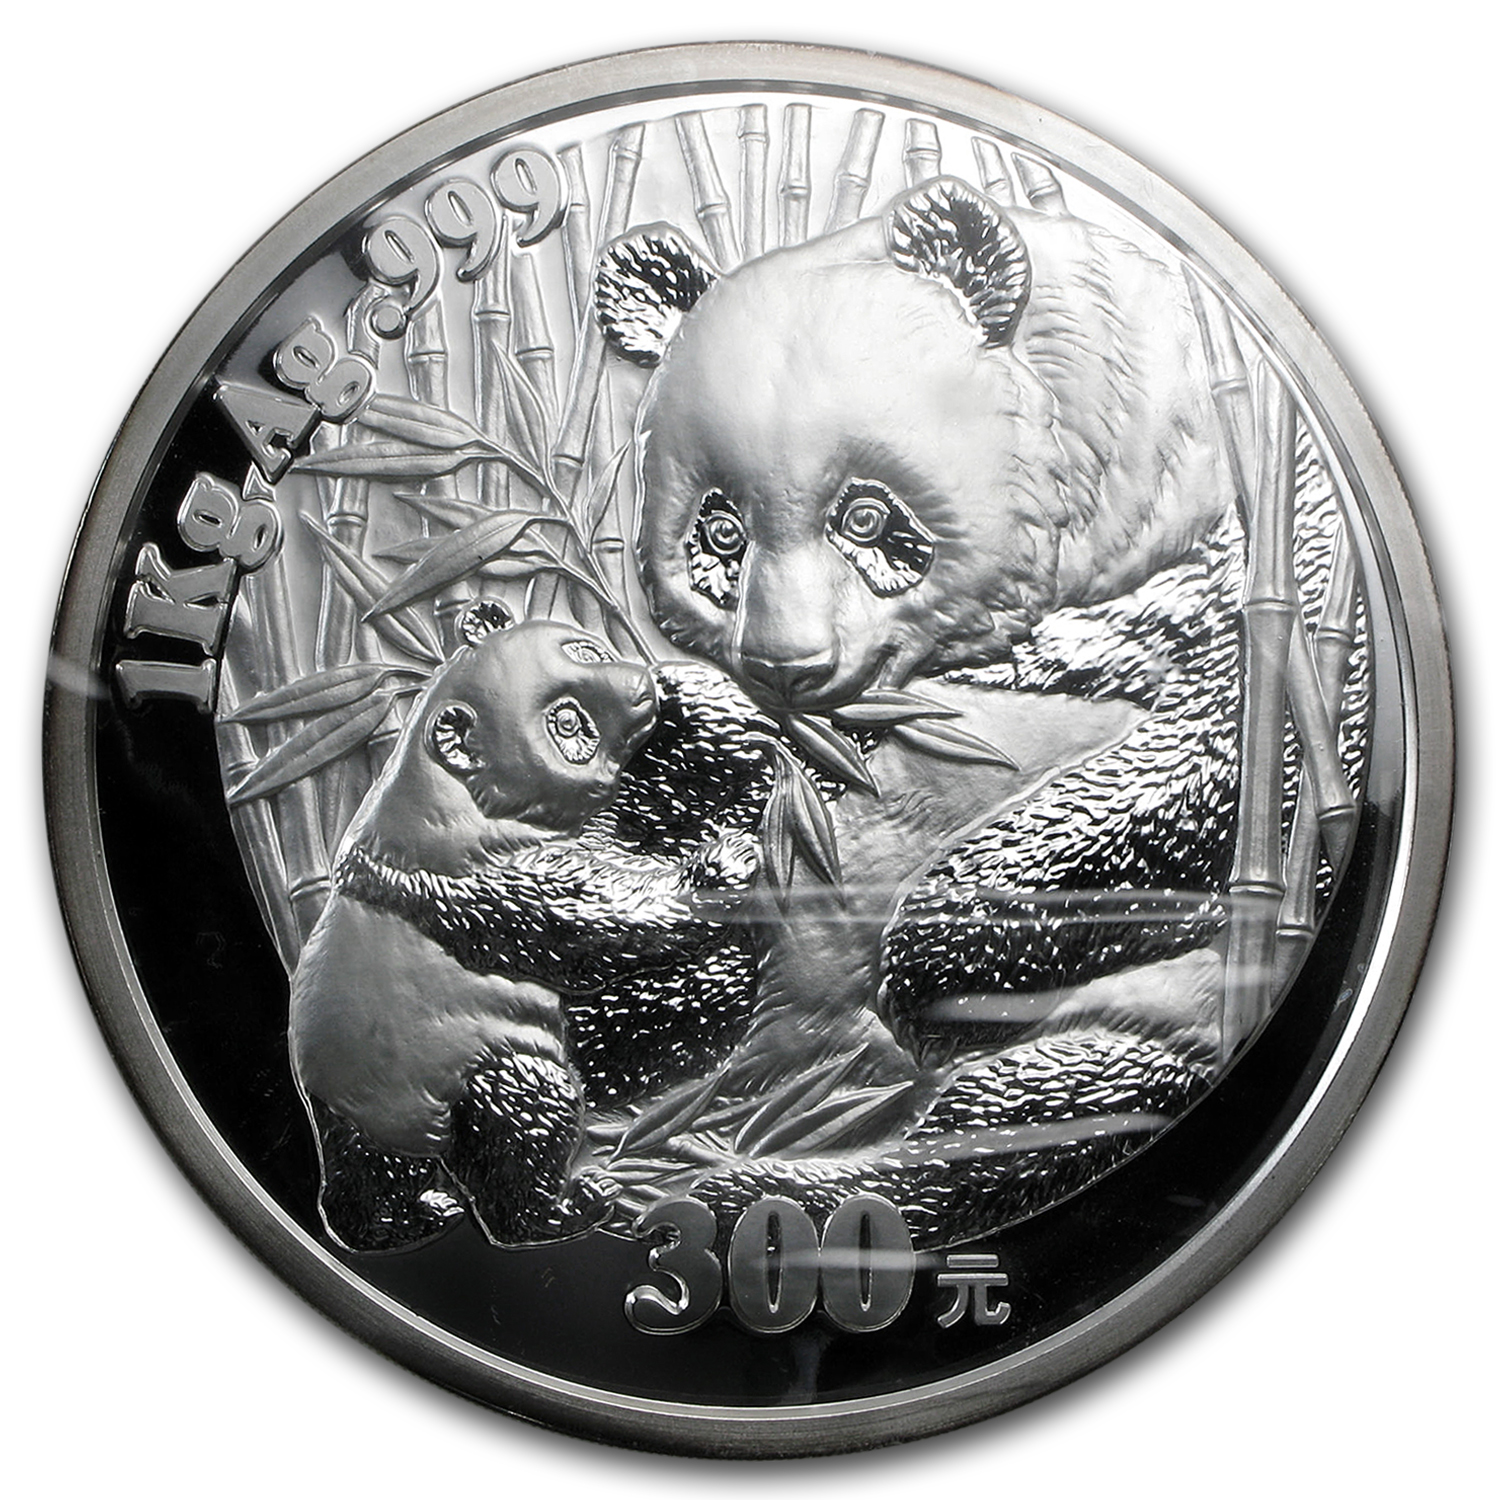 2005 1 Kilo Silver Chinese Panda Proof (w/Box & COA)